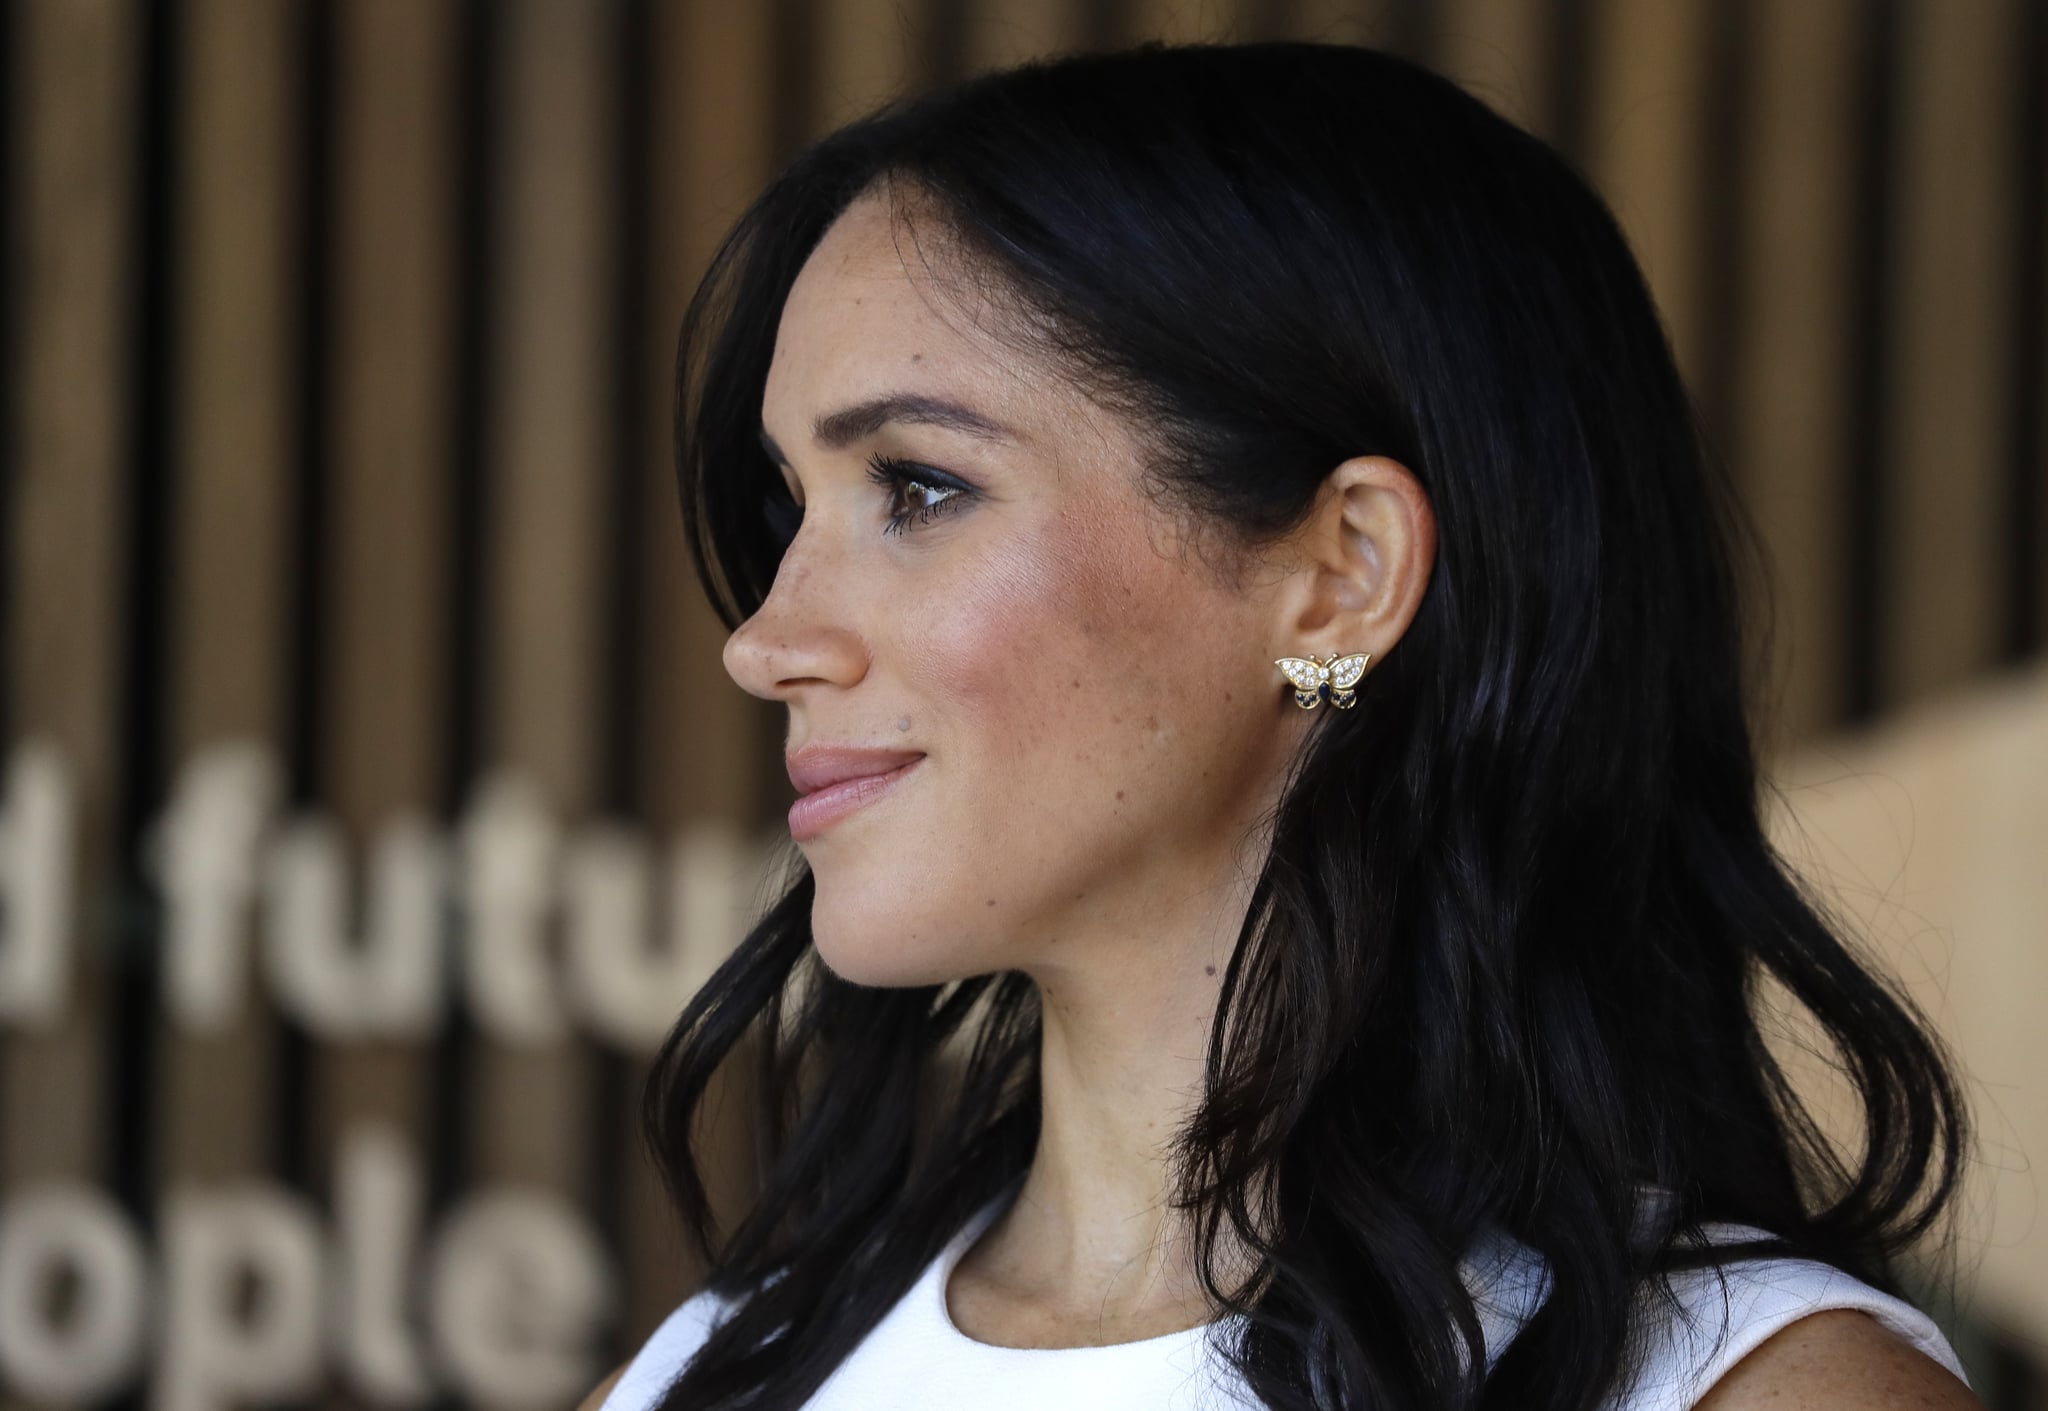 SYDNEY, AUSTRALIA - OCTOBER 16:  Meghan, Duchess of Sussex attends a ceremony at Taronga Zoo on October 16, 2018 in Sydney, Australia. The Duke and Duchess of Sussex are on their official 16-day Autumn tour visiting cities in Australia, Fiji, Tonga and New Zealand.  (Photo by Kristy Wigglesworth – Pool/Getty Images)